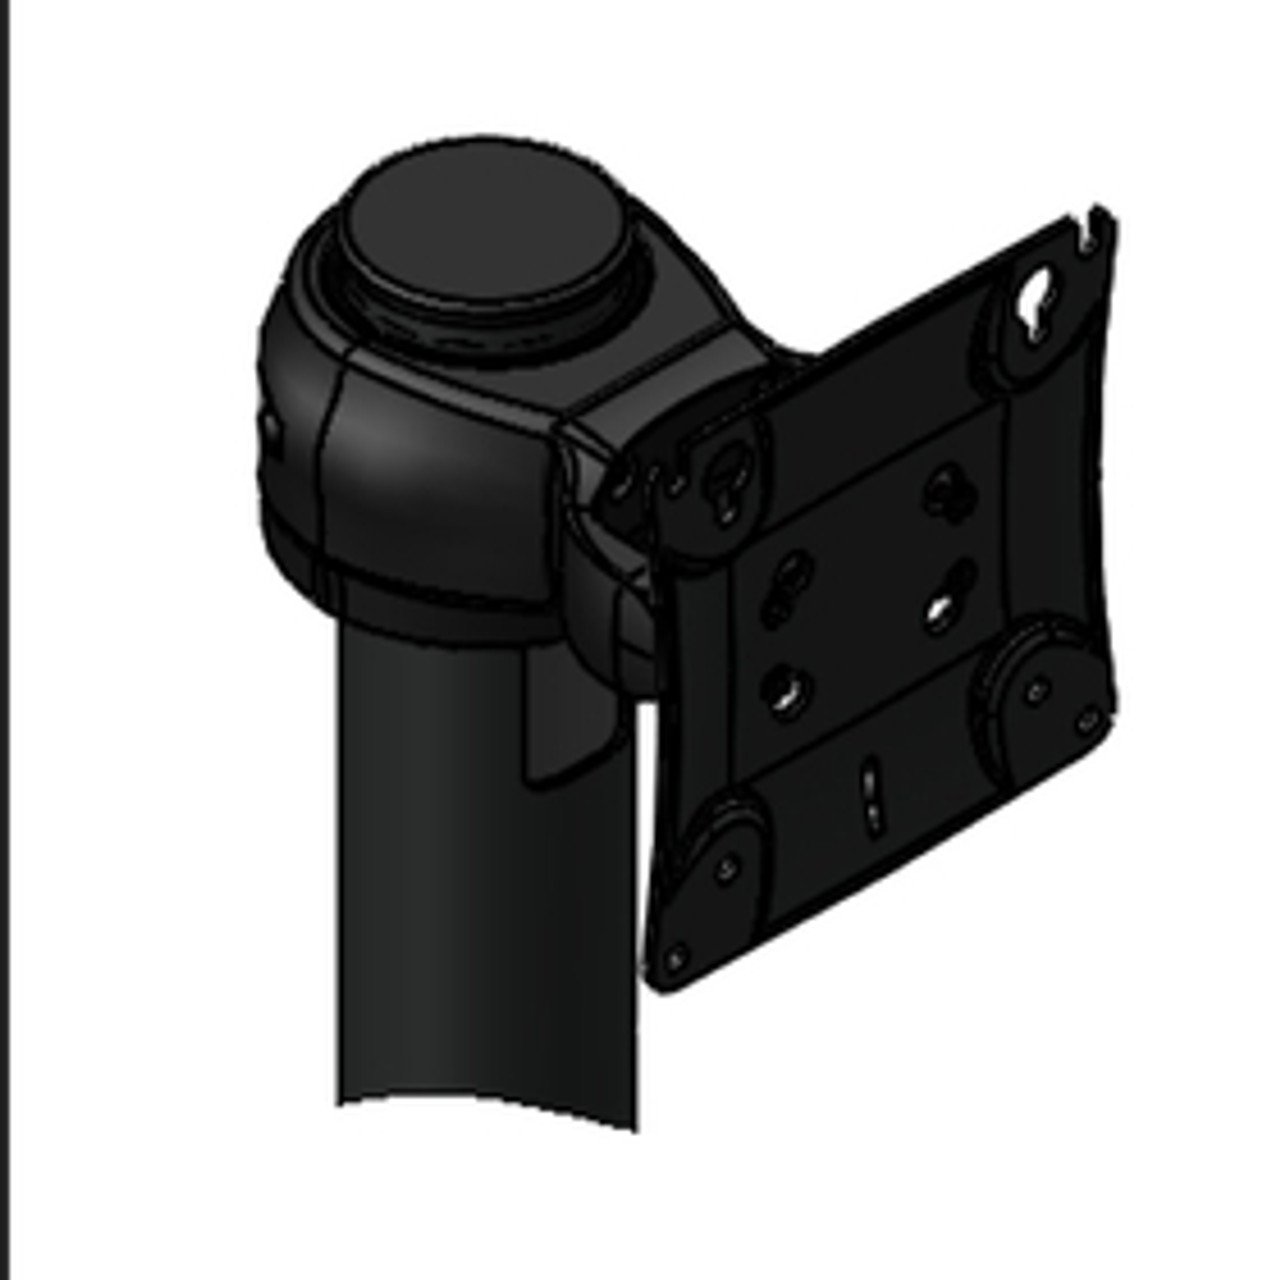 POS Monitor Pivot Single Genesis Pivot (up/down) for 1 Device VESA Rotating Pole Clamp included